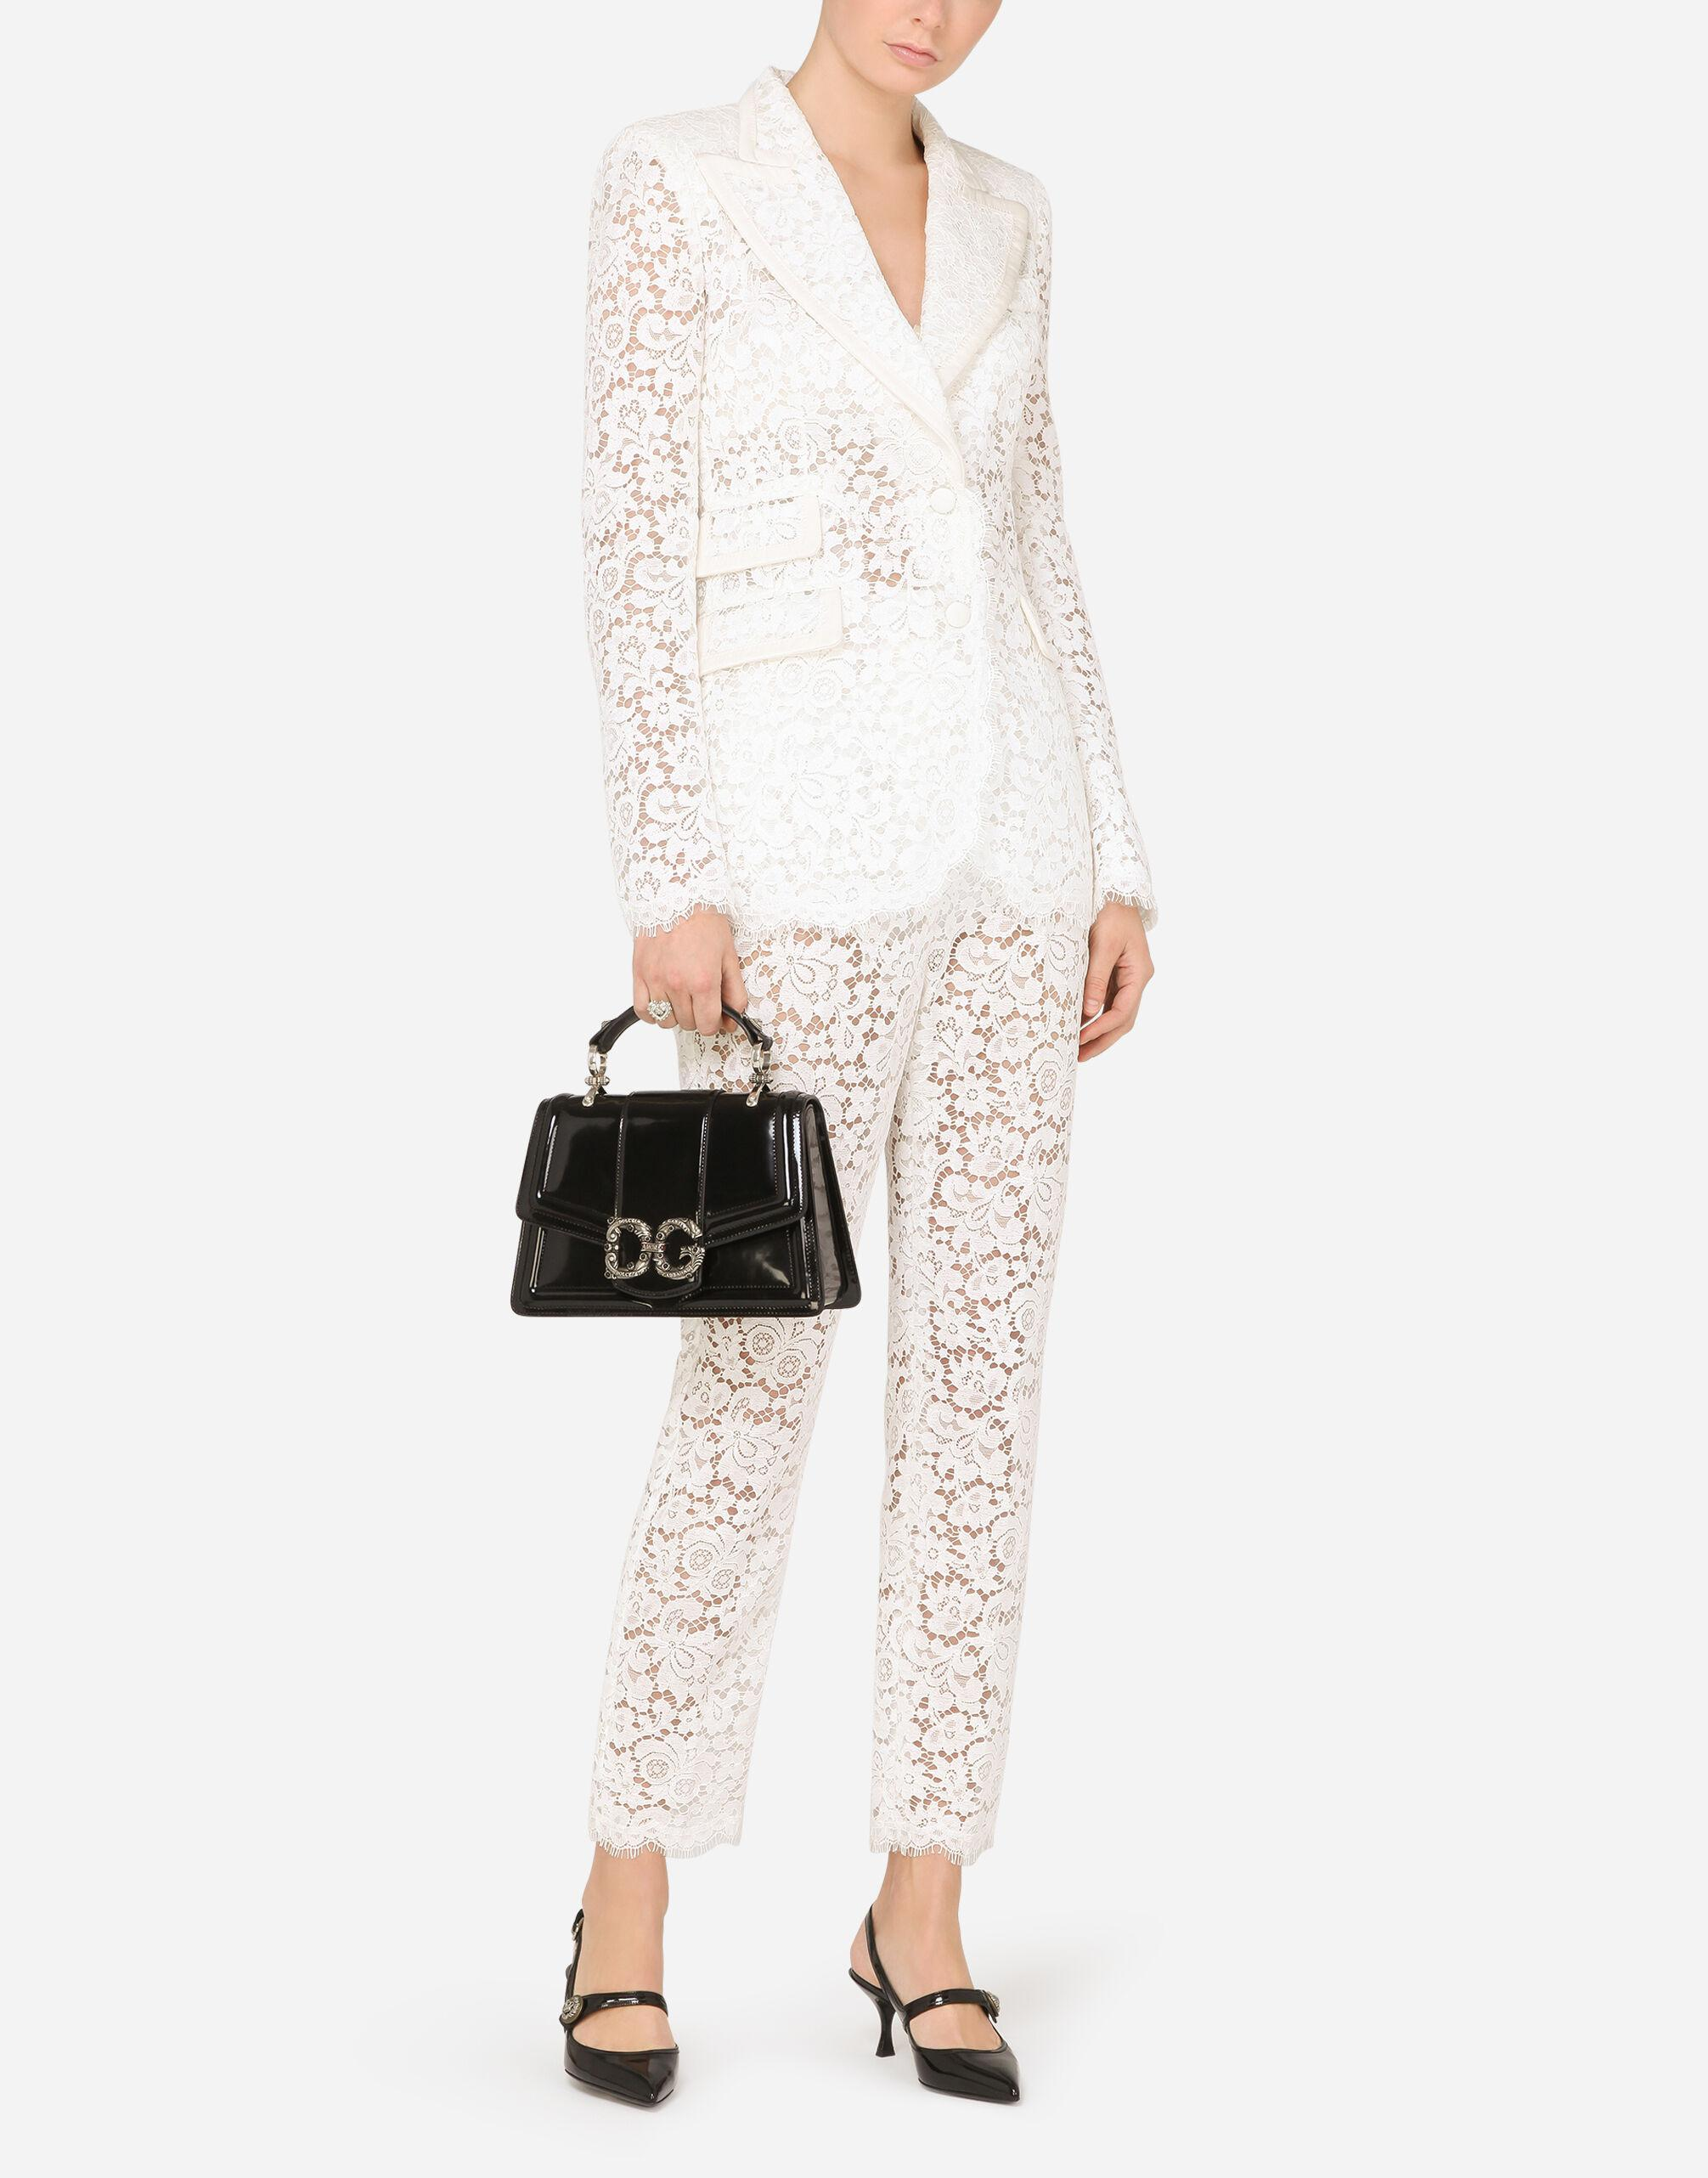 Lace jacket with edge detailing 3